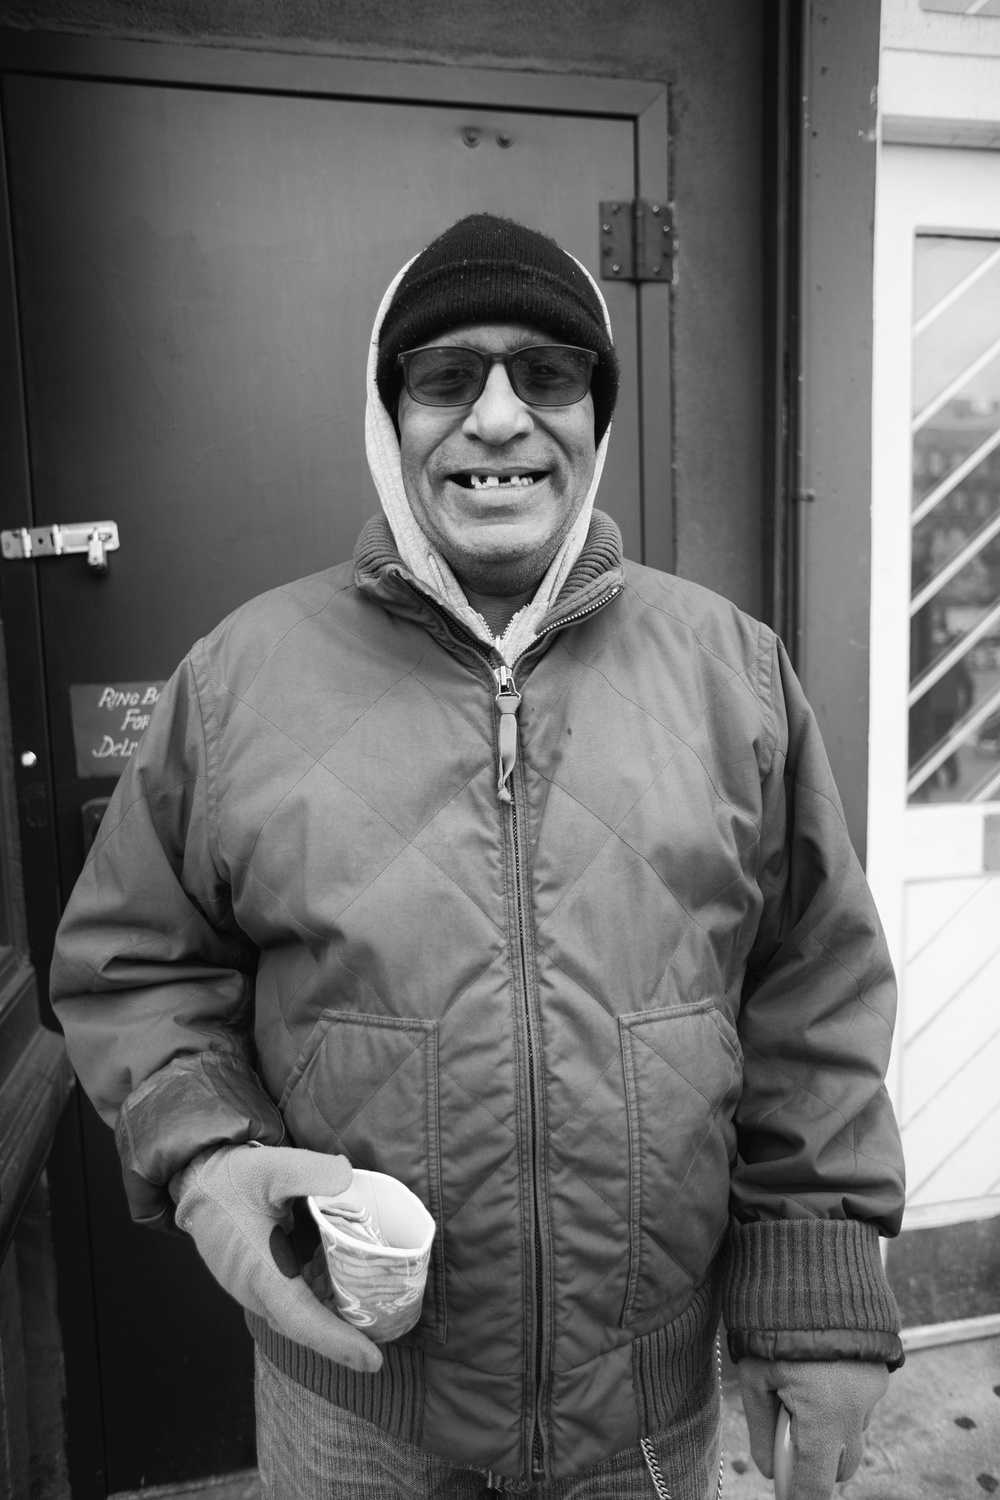 GREAT CONVERSATION WITH THIS GENTLEMAN ON HOUSTON STREET